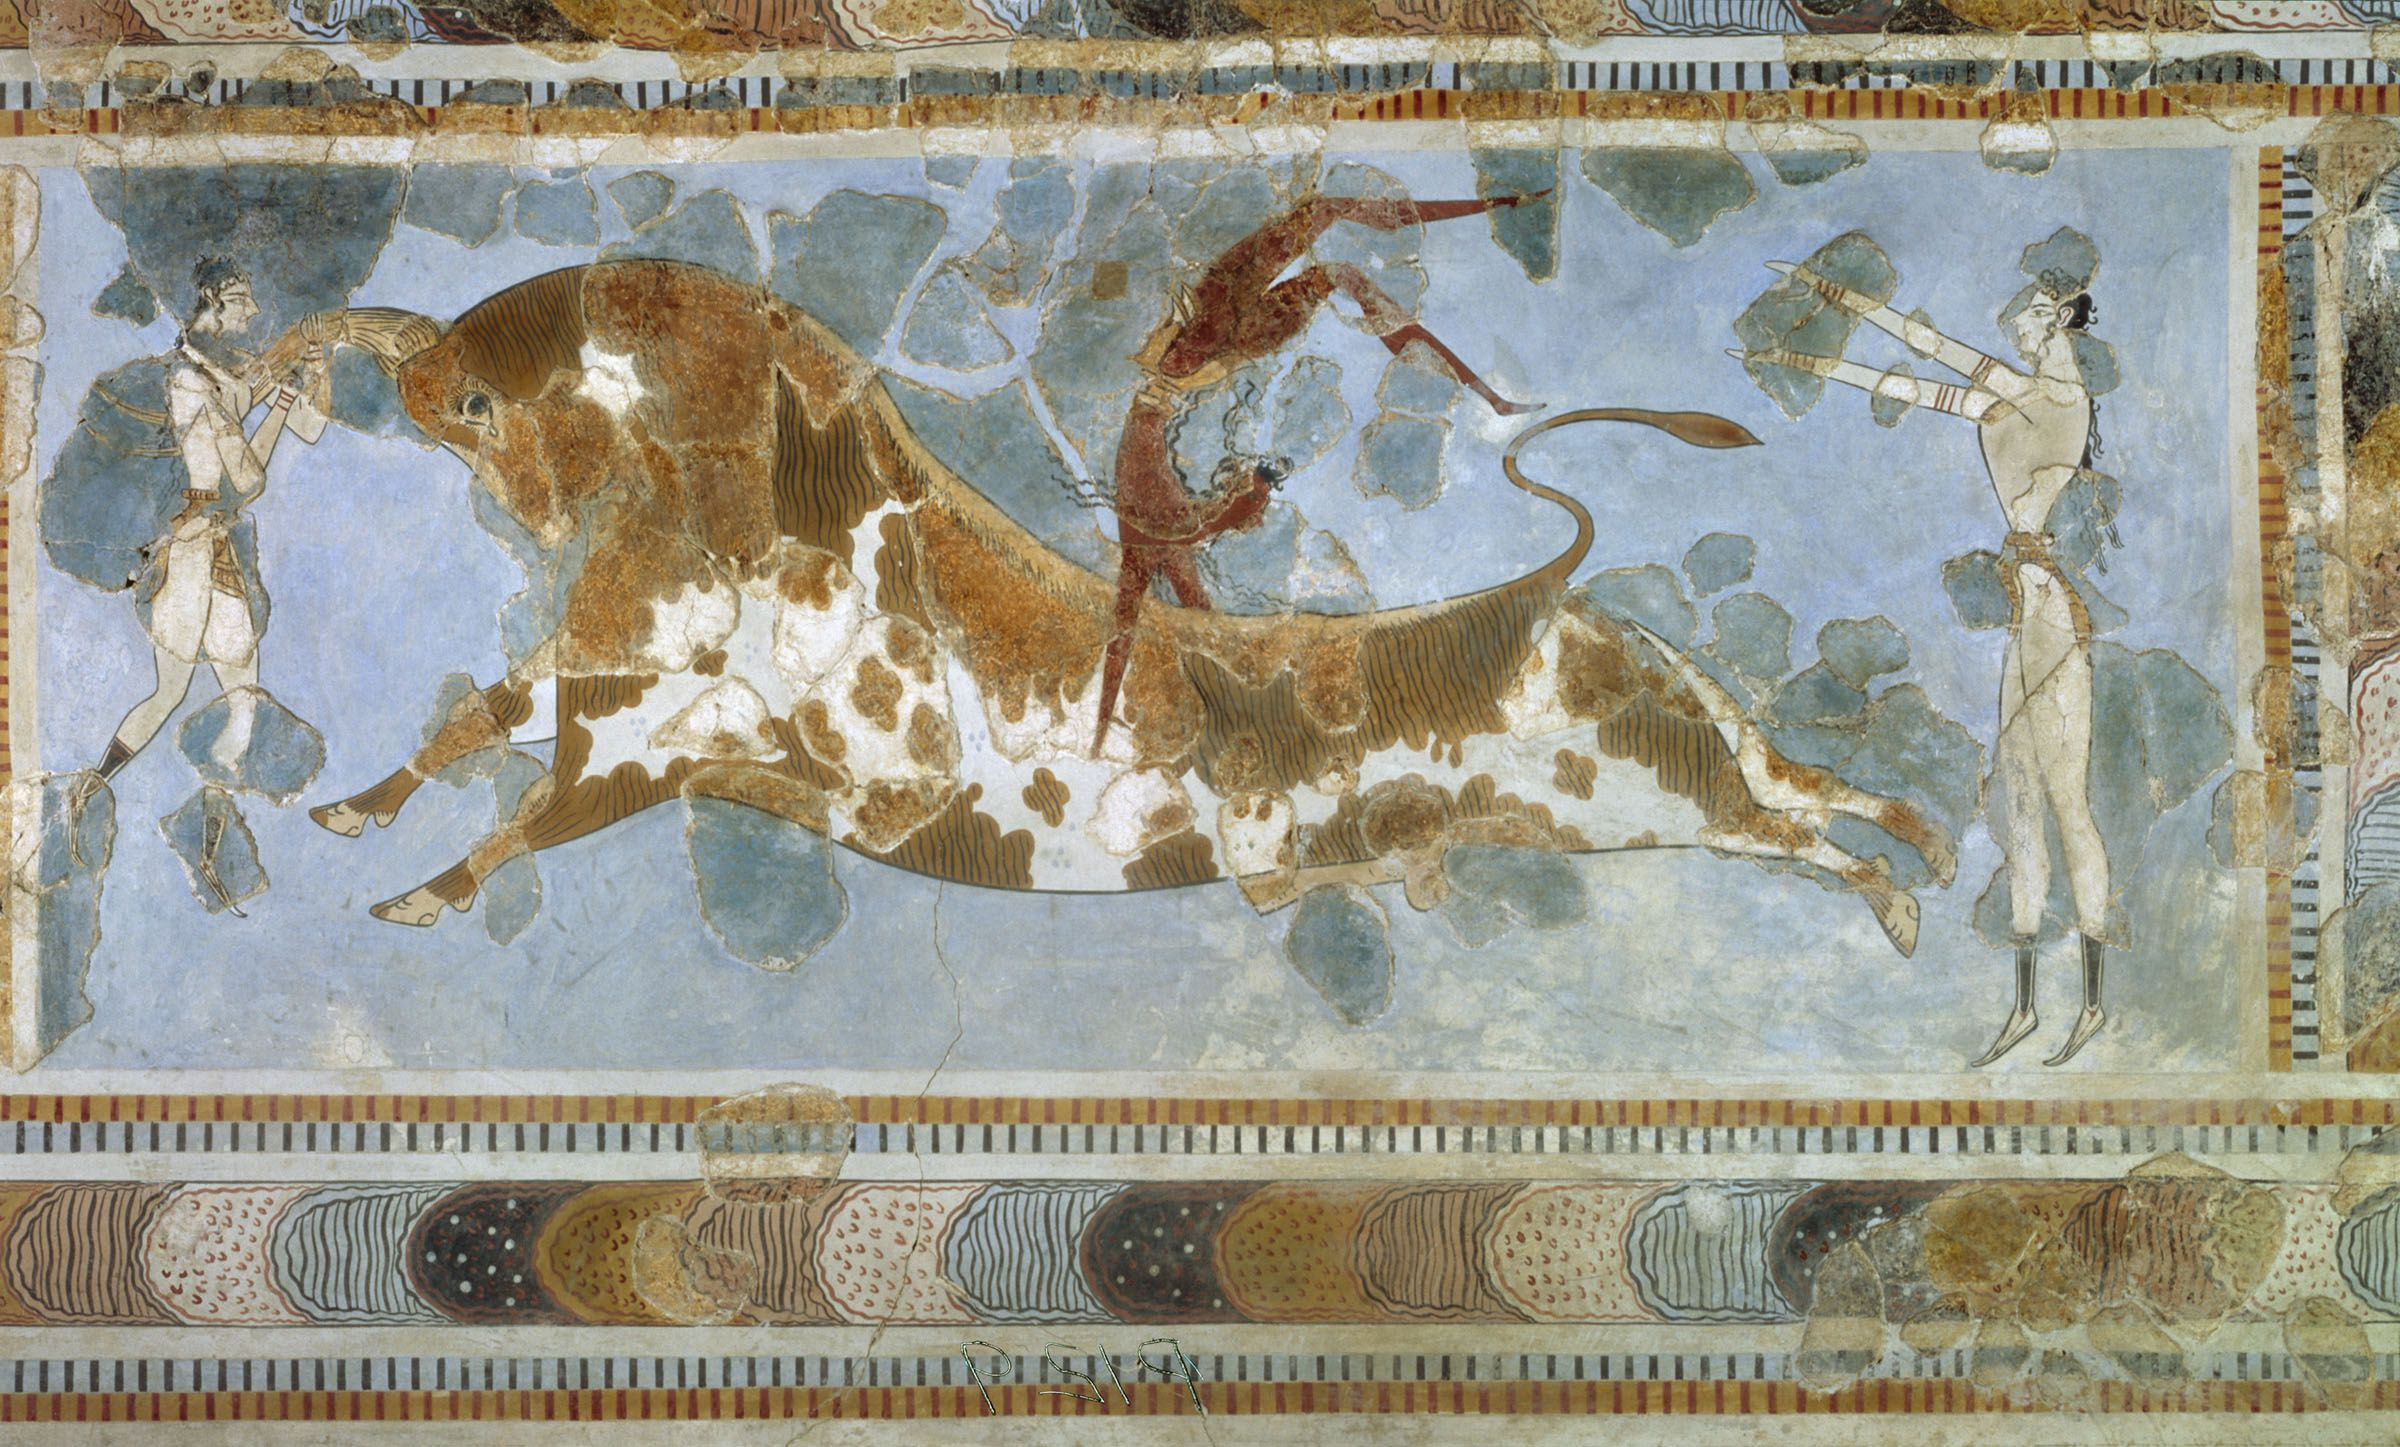 Wall Paintings From The Minoan Culture